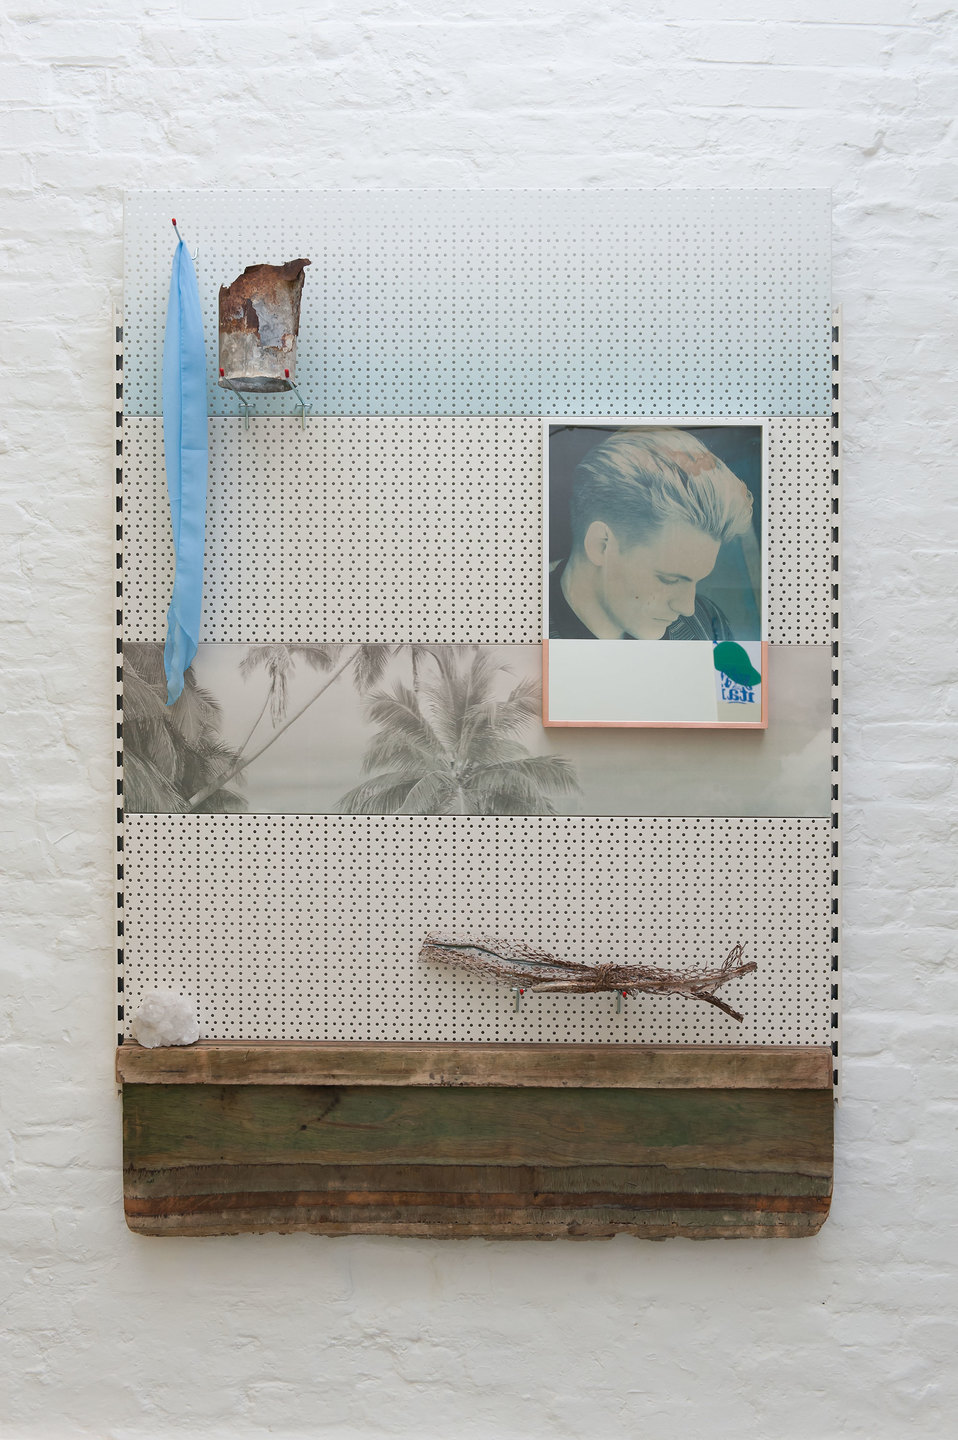 Gabriele Beveridge, See through you, 2013, Poster, rusted metal, healing crystal, frame, inkjet on pegboard, mirror, scarf, wood, pegs, 180cm x 125cm x 6cm, Cell Project Space